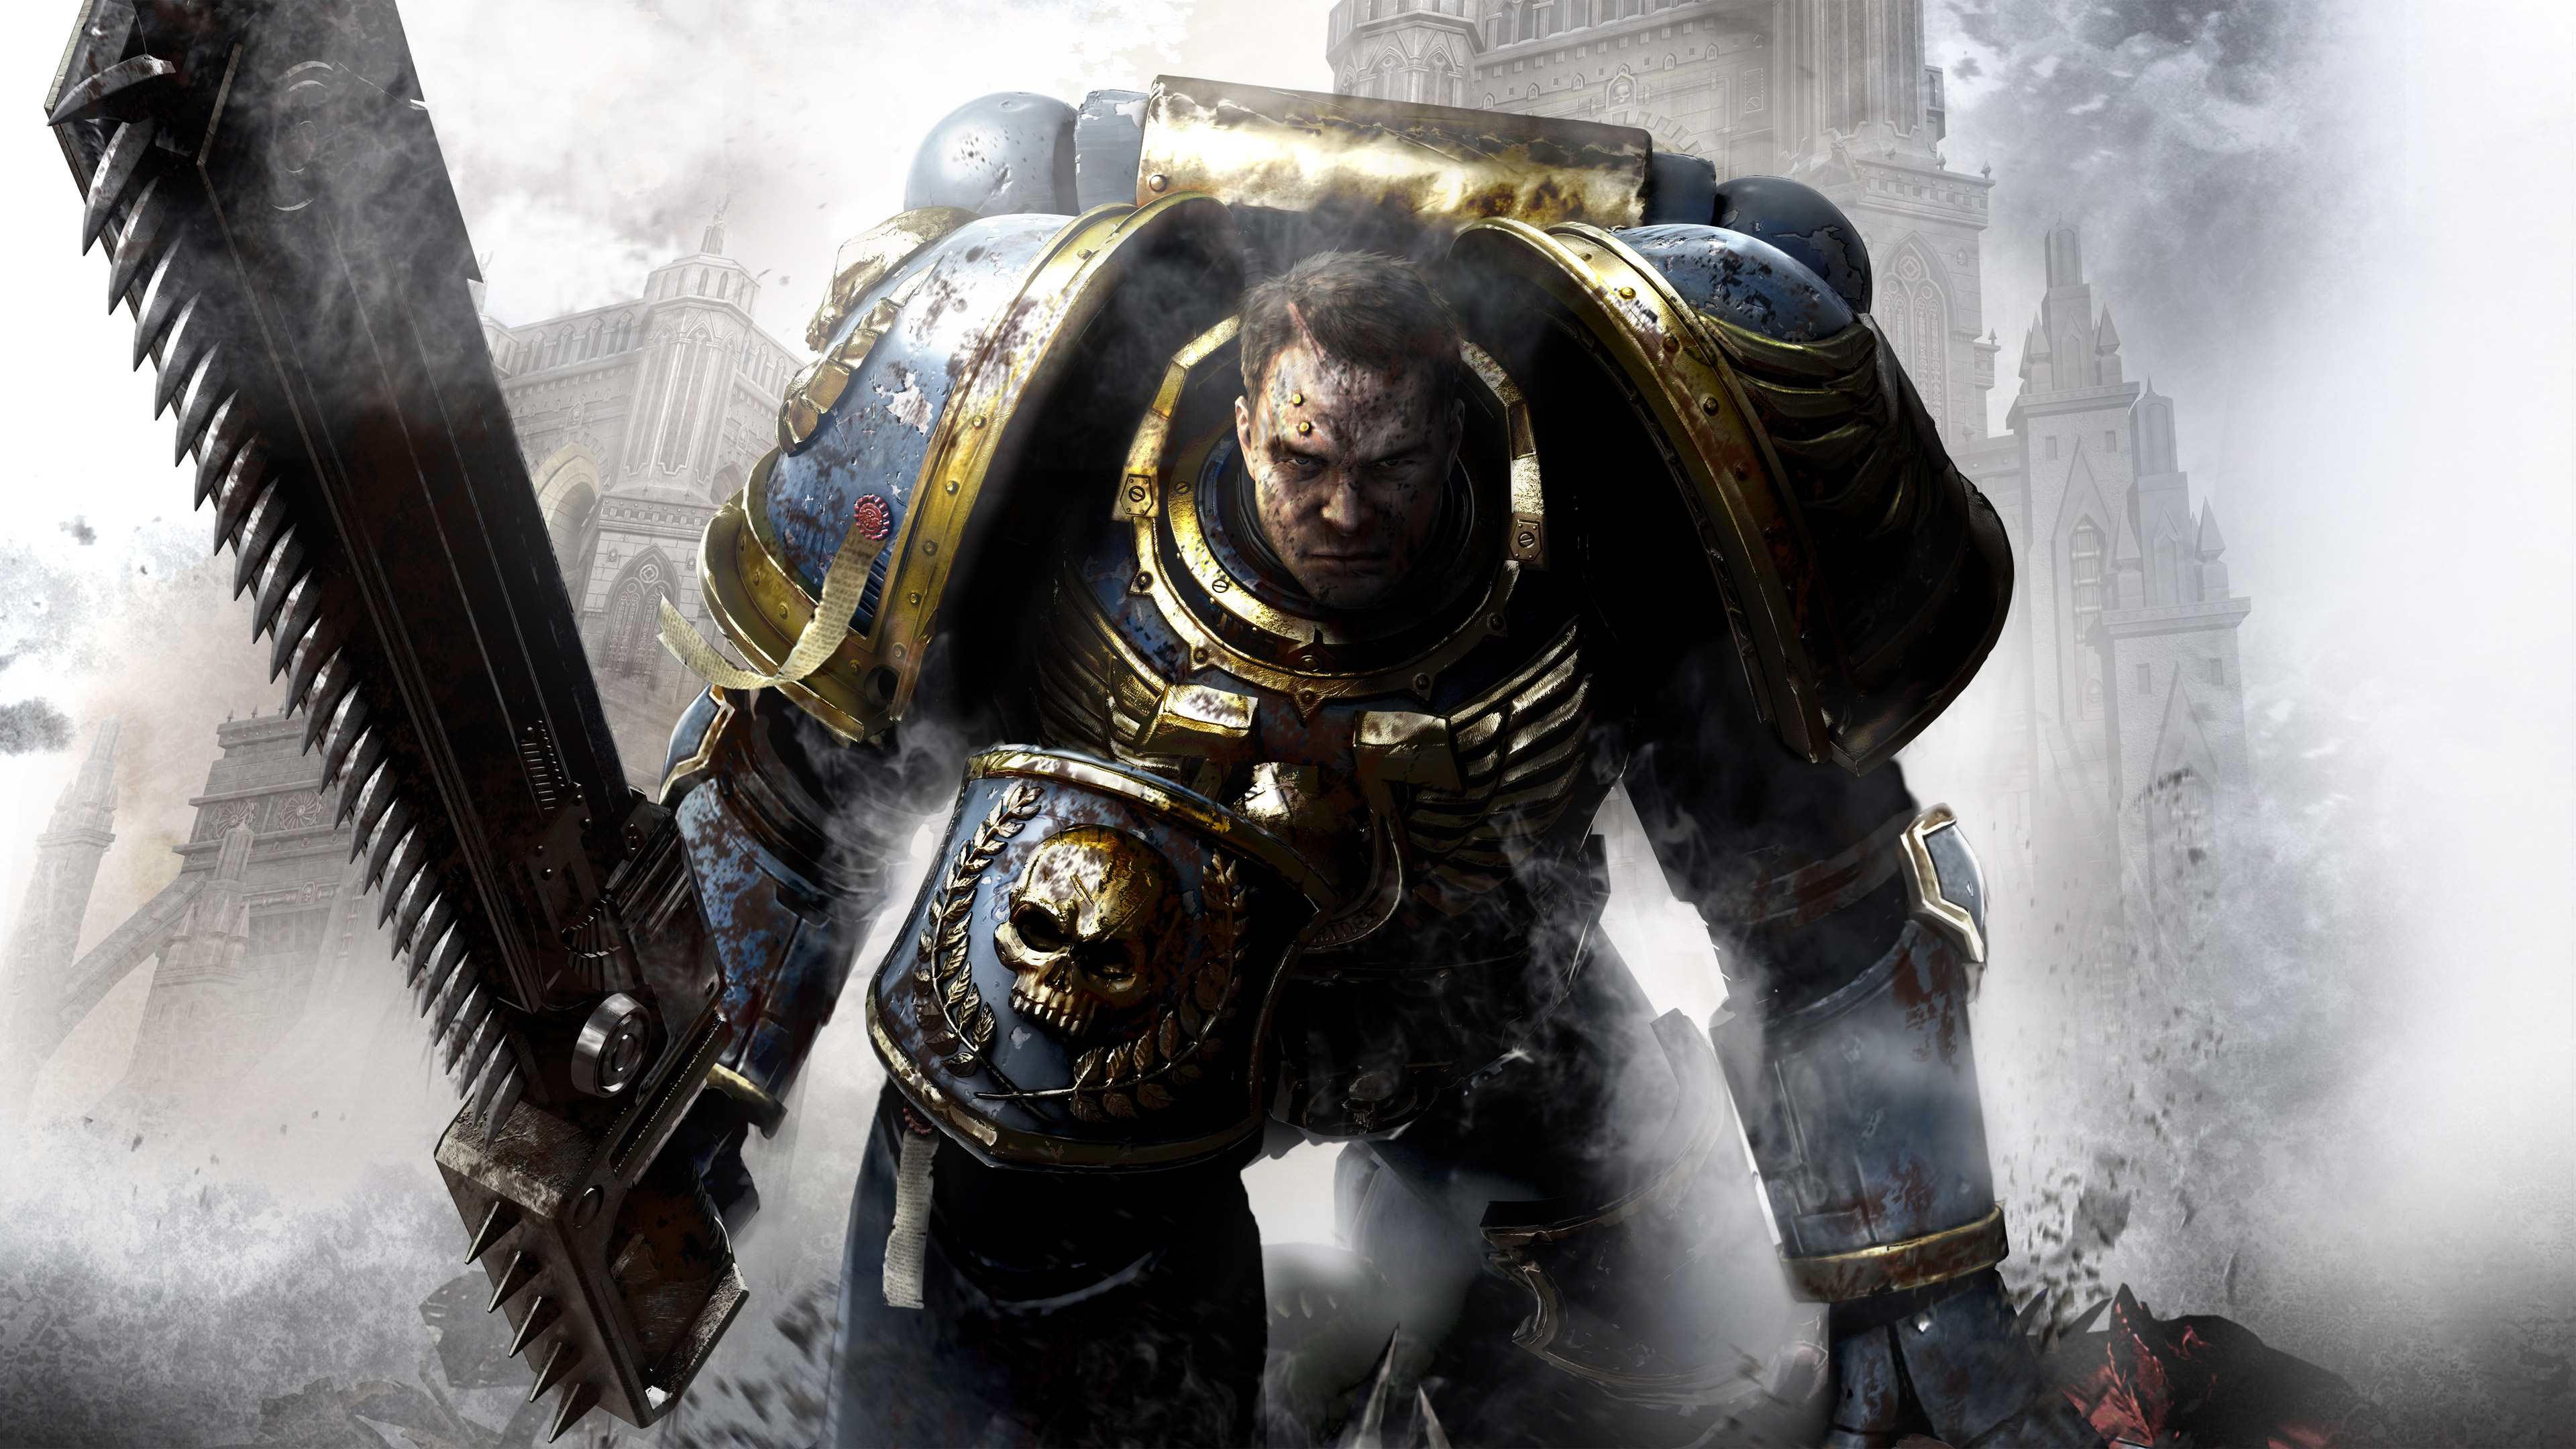 Wallpapers Hd Hulk Captain Titus Warhammer 40000 Space Marine Hd Games 4k